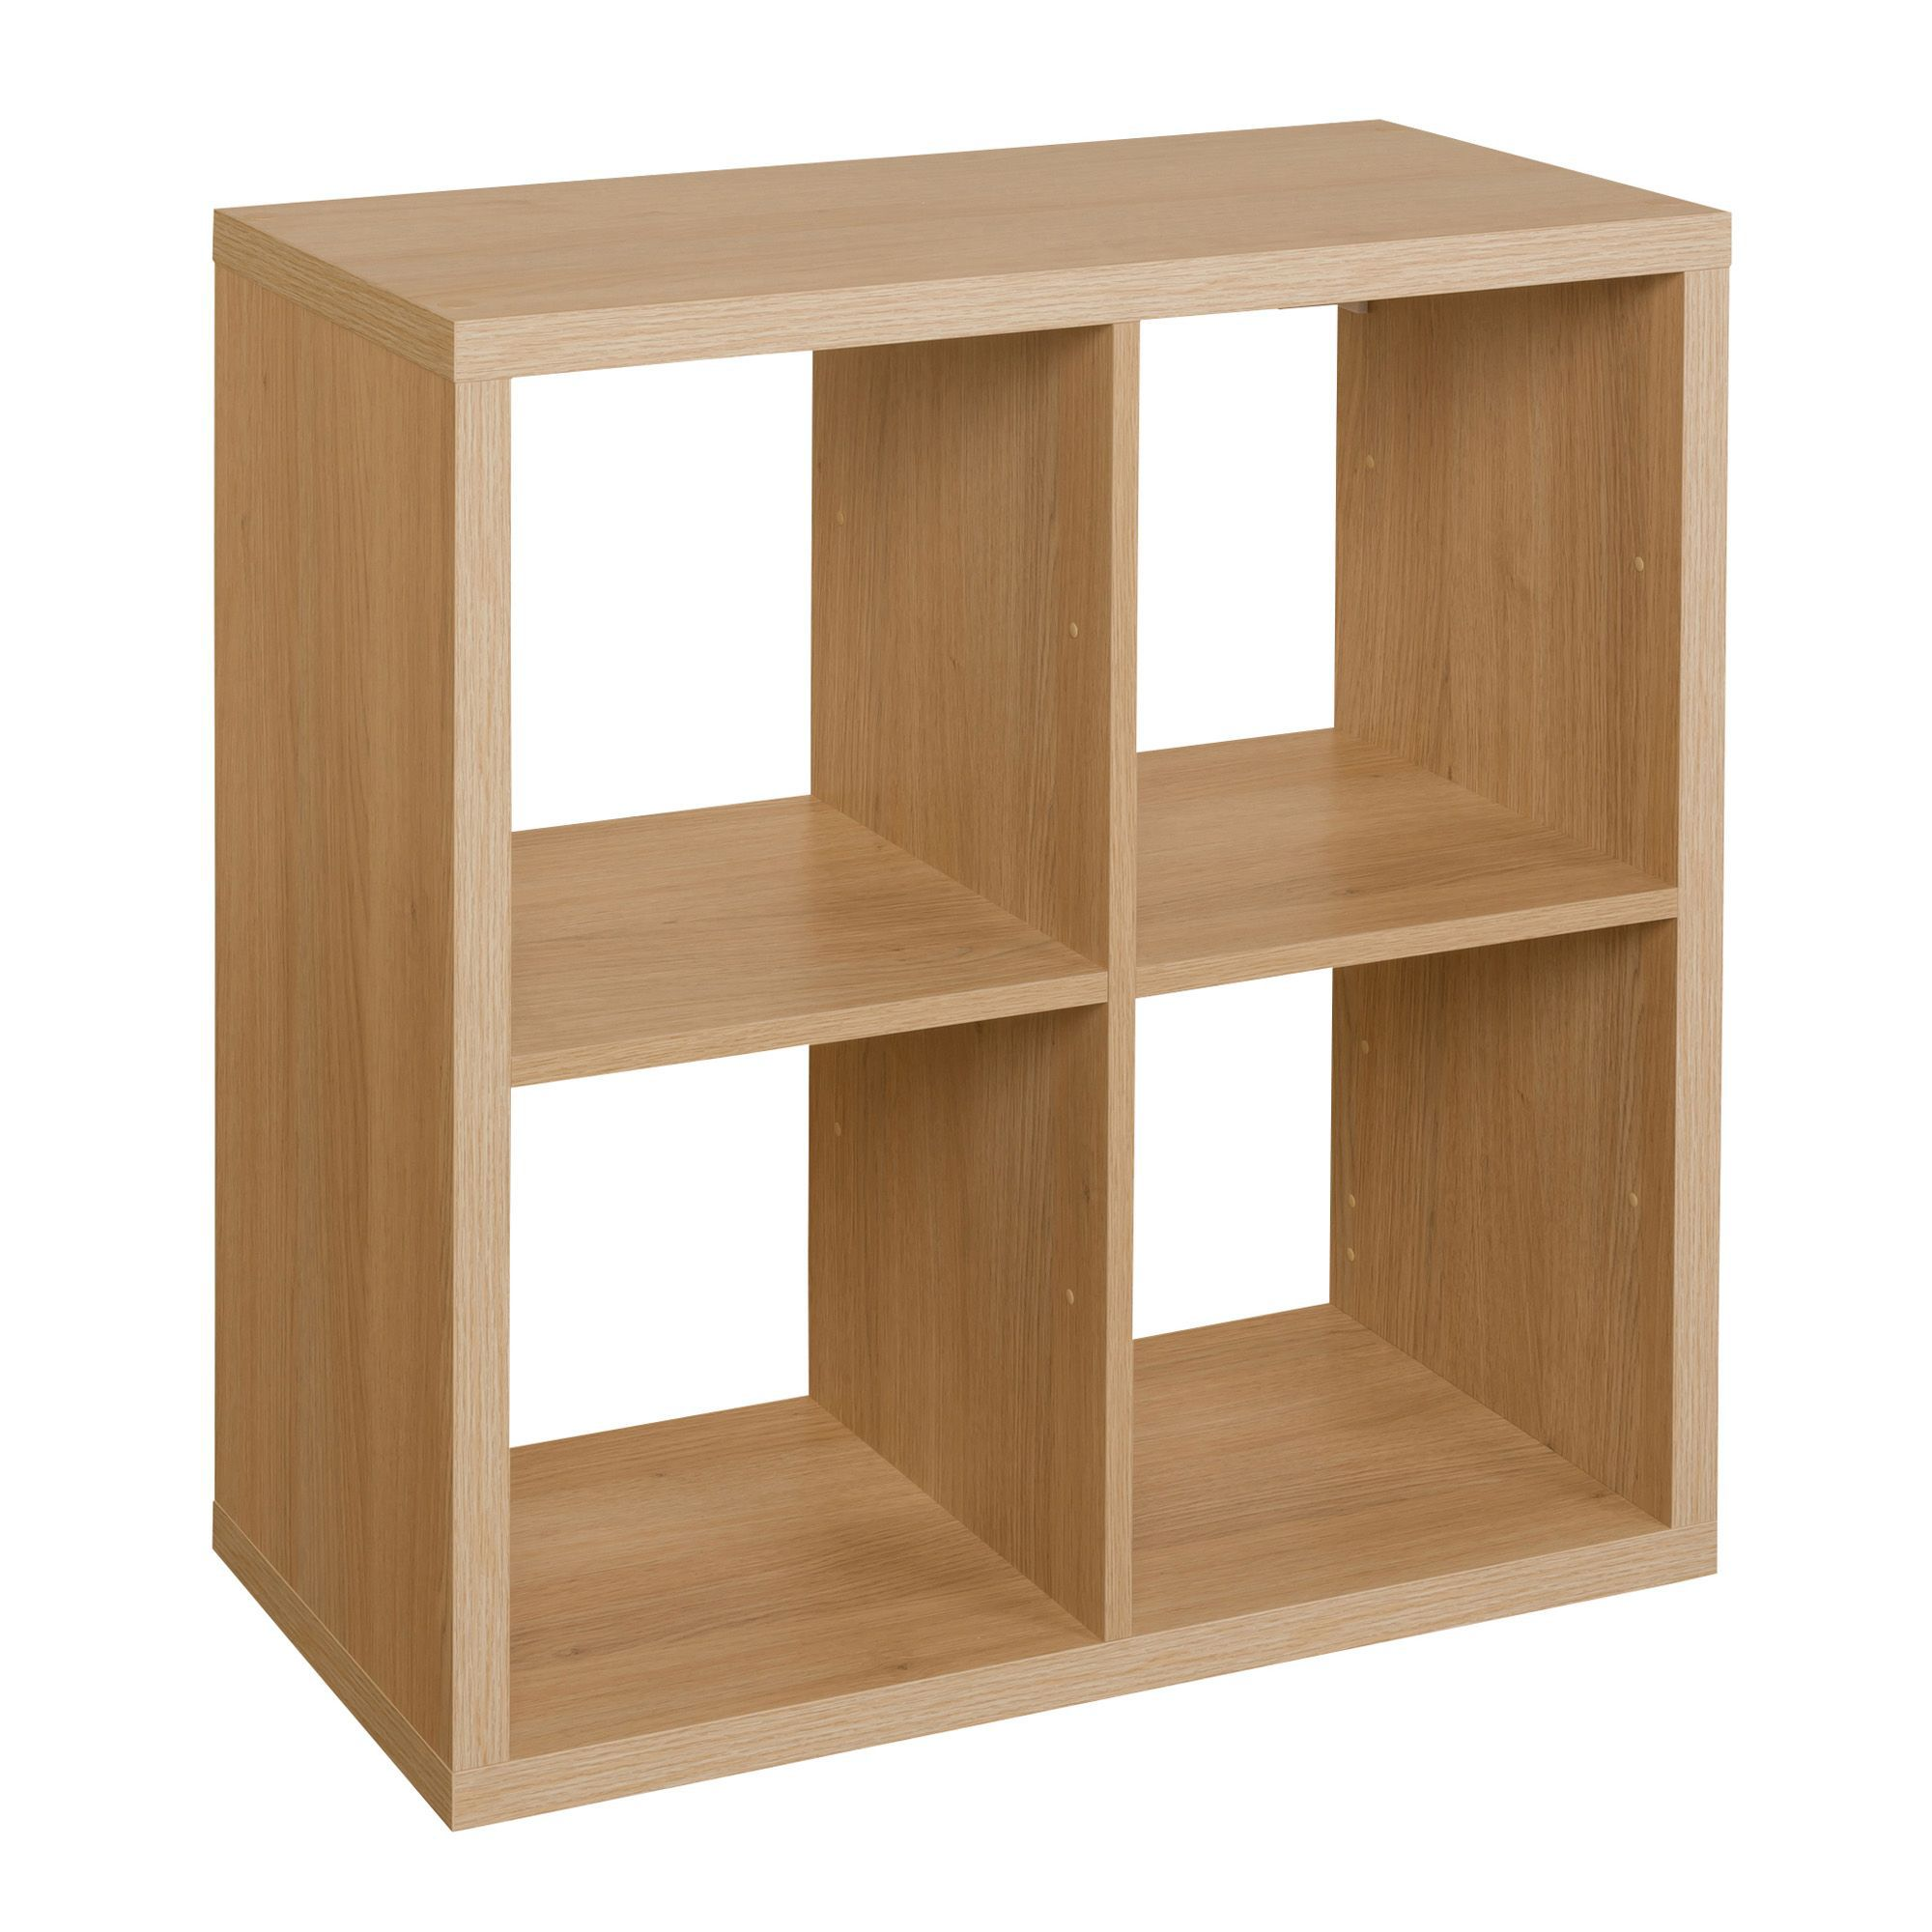 Form Mixxit Oak Effect 4 Cube Shelving Unit H 740mm W